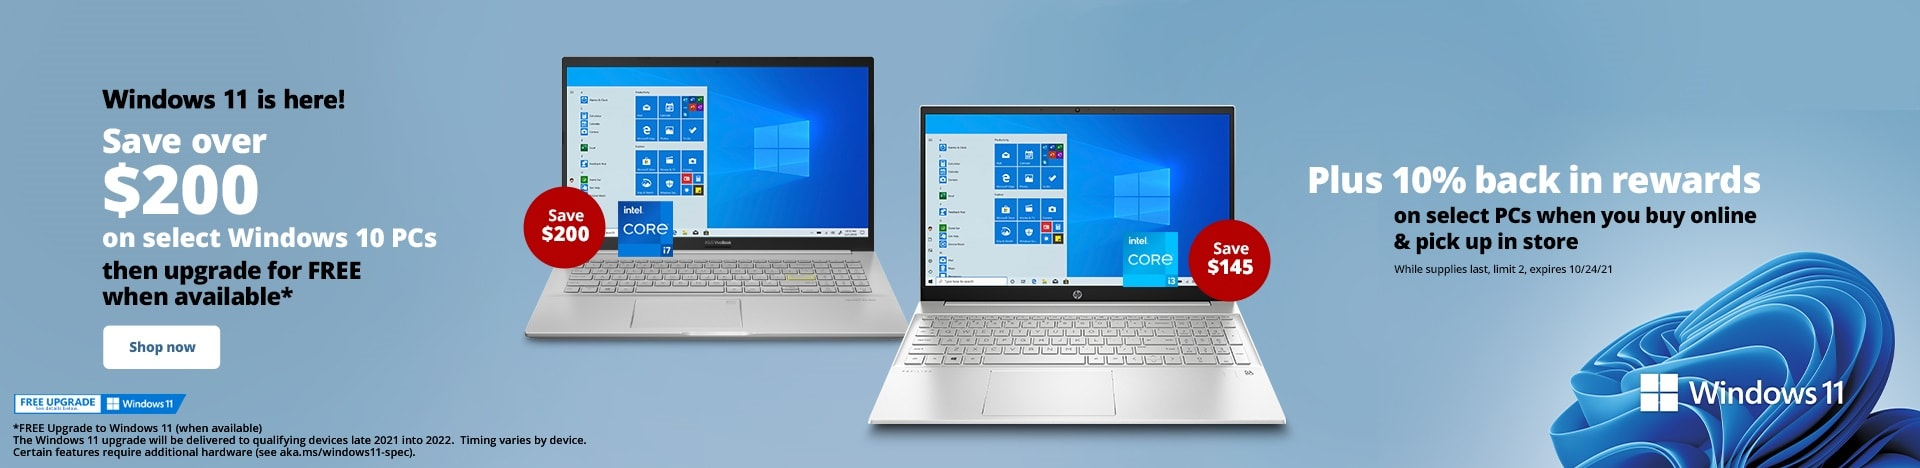 Save over $200 on select Windows PCs then upgrade for FREE when available*